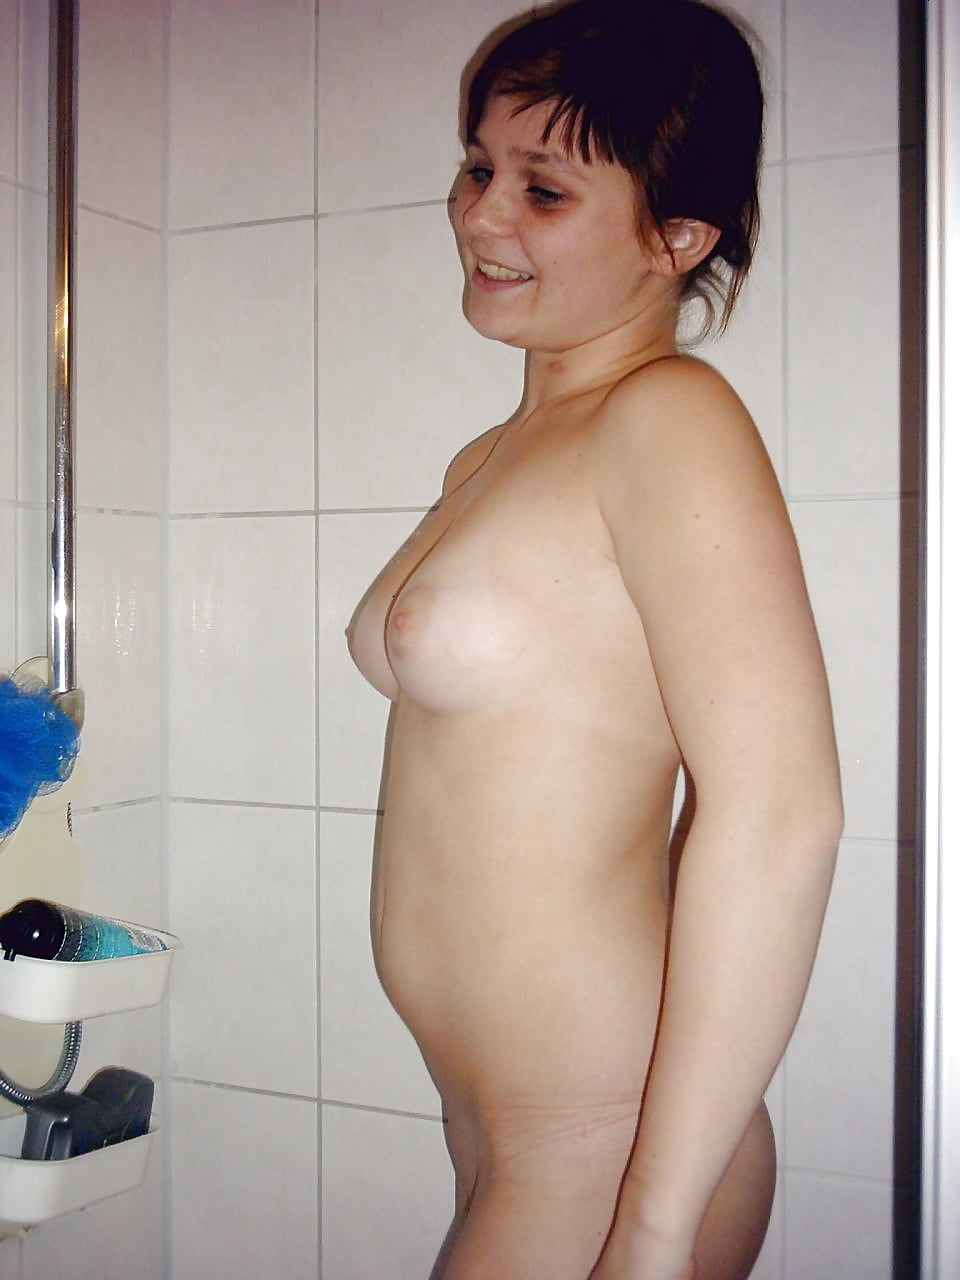 Young Amateur Nude